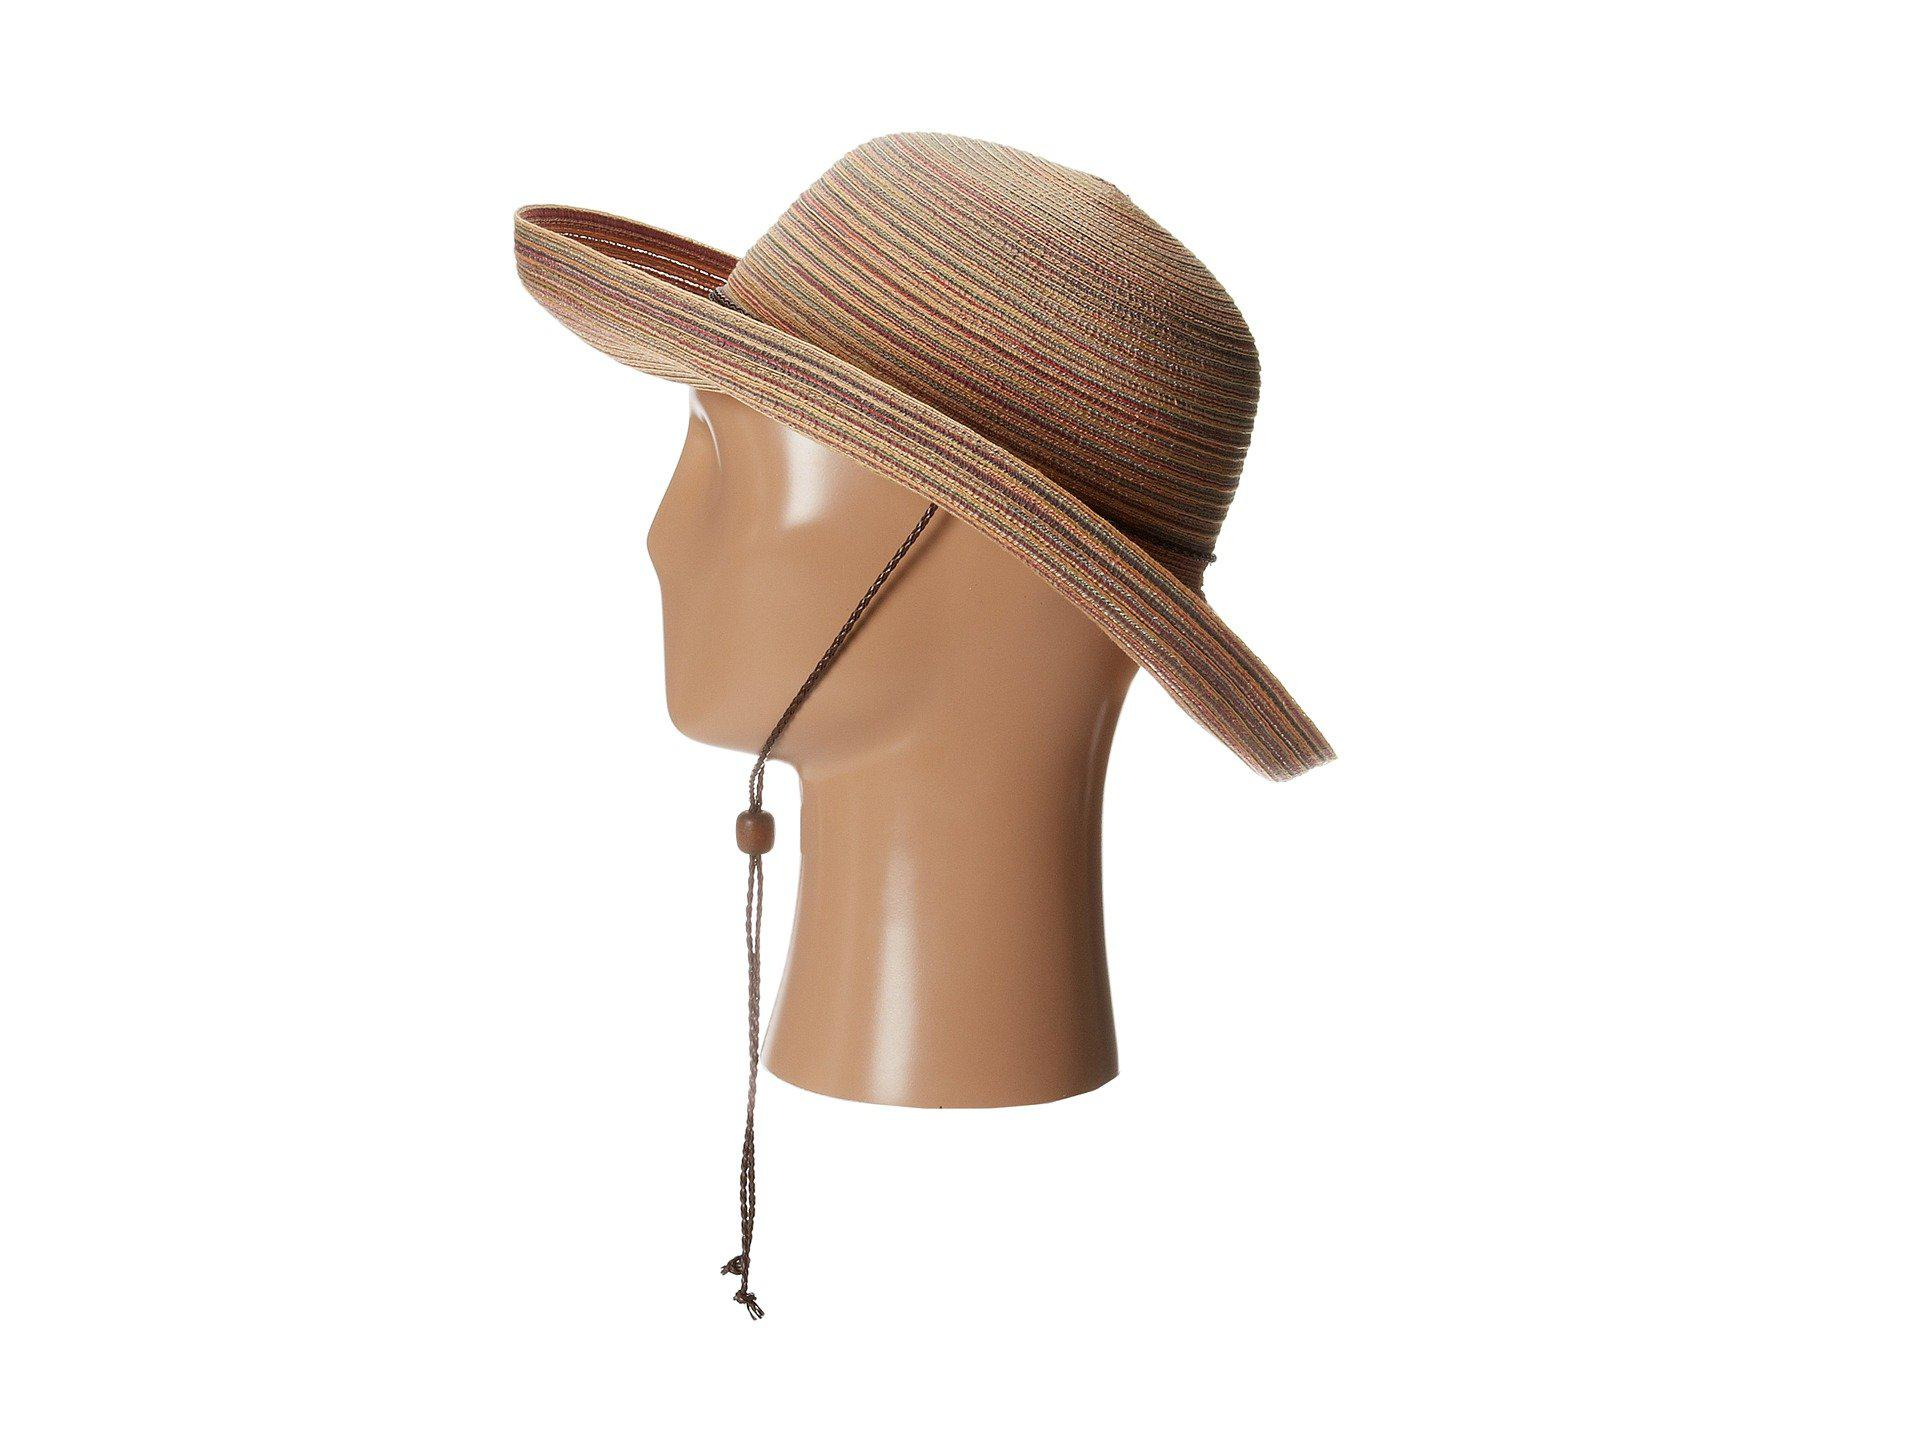 9f87854a898 San Diego Hat Company - Brown Mxm1014 Mixed Braid Kettle Brim Hat (rust)  Traditional. View fullscreen